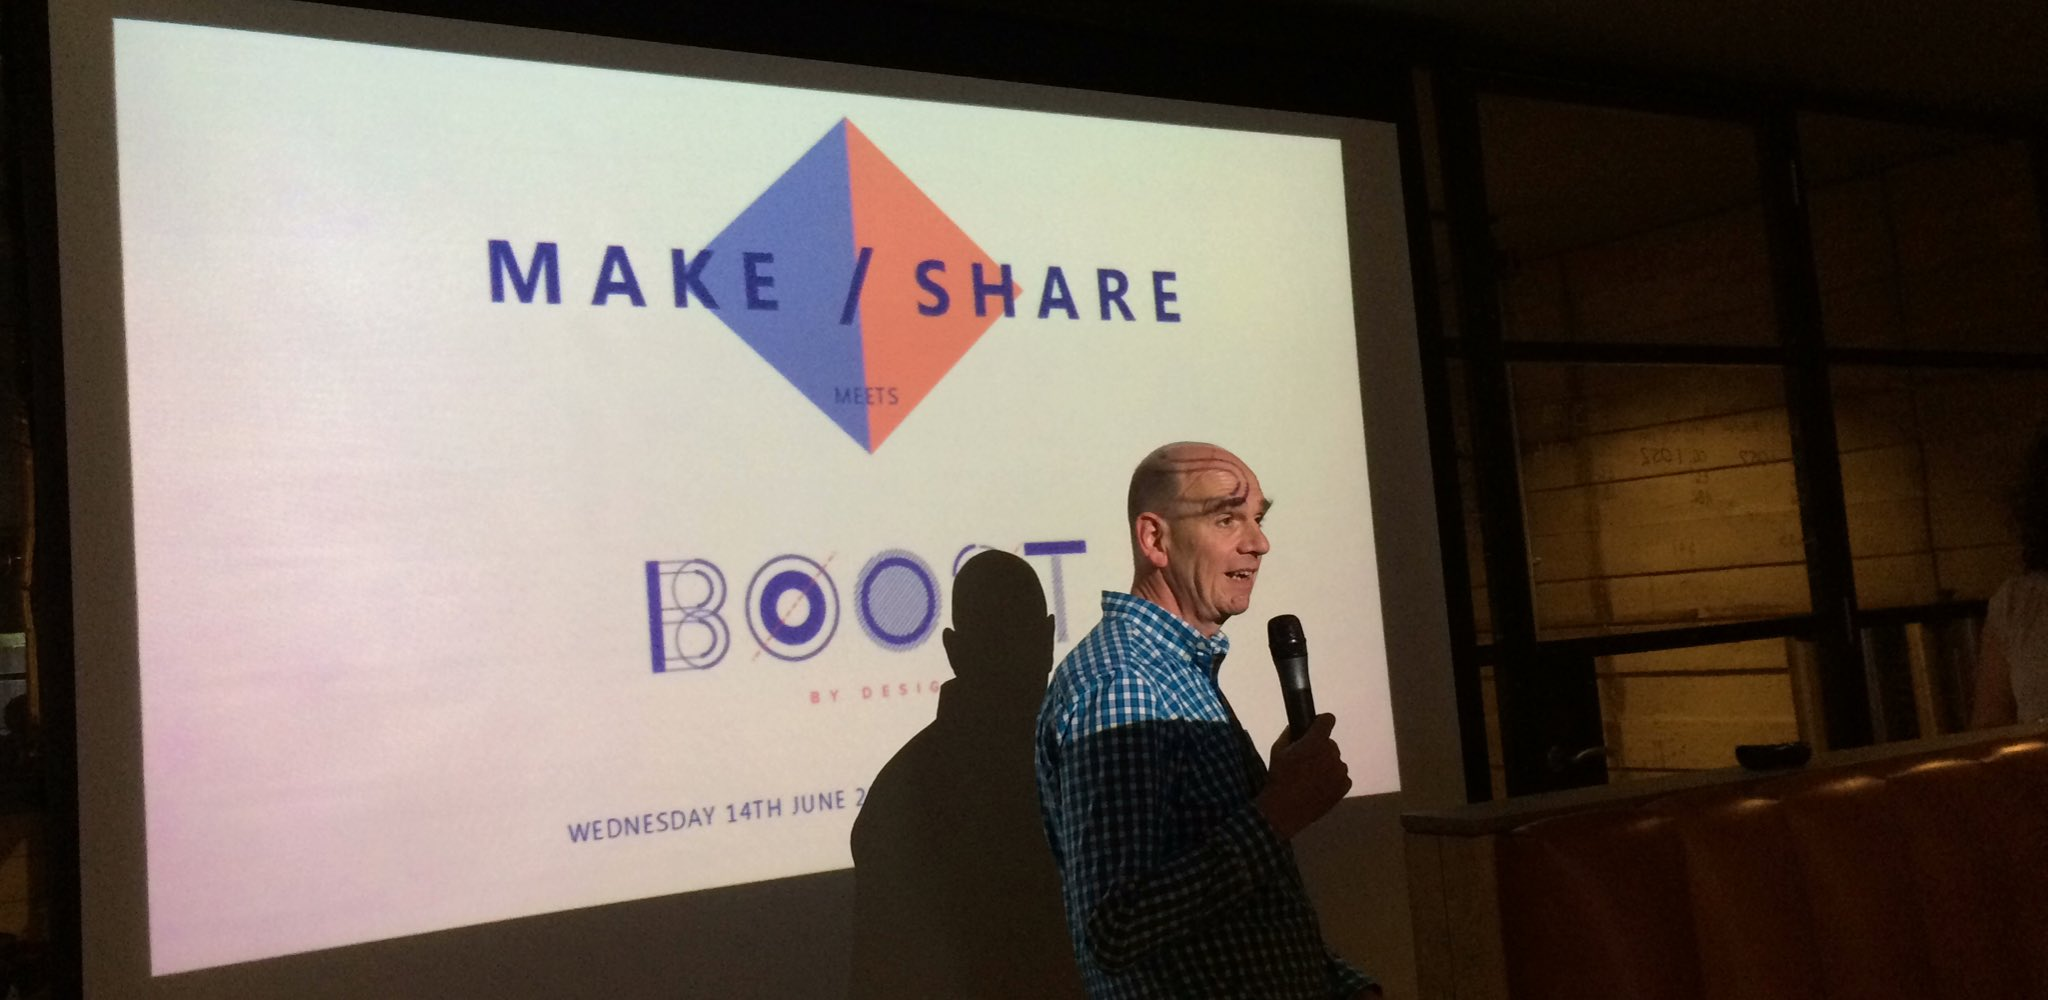 Tonight #makeshare meets #boostbydesign https://t.co/87NpDQPE3p